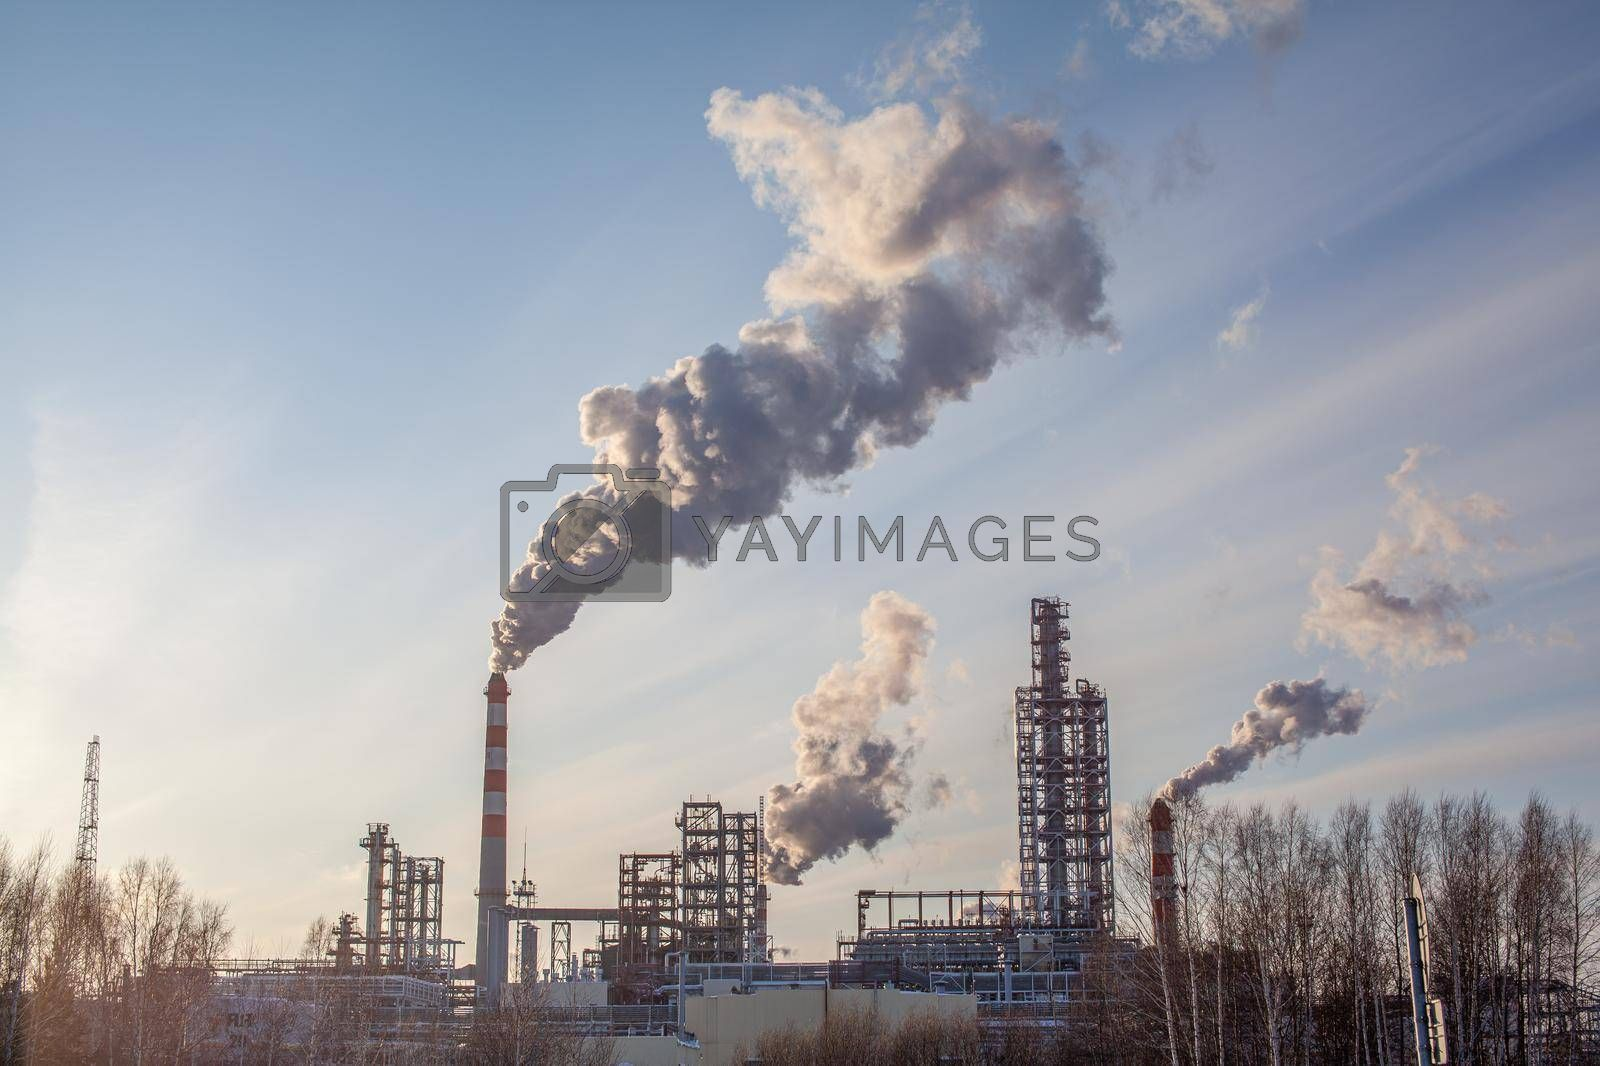 Petrochemical industrial factory of heavy industry, power refinery production with smoke pollution. Thick smoke is coming from the factory's chimney